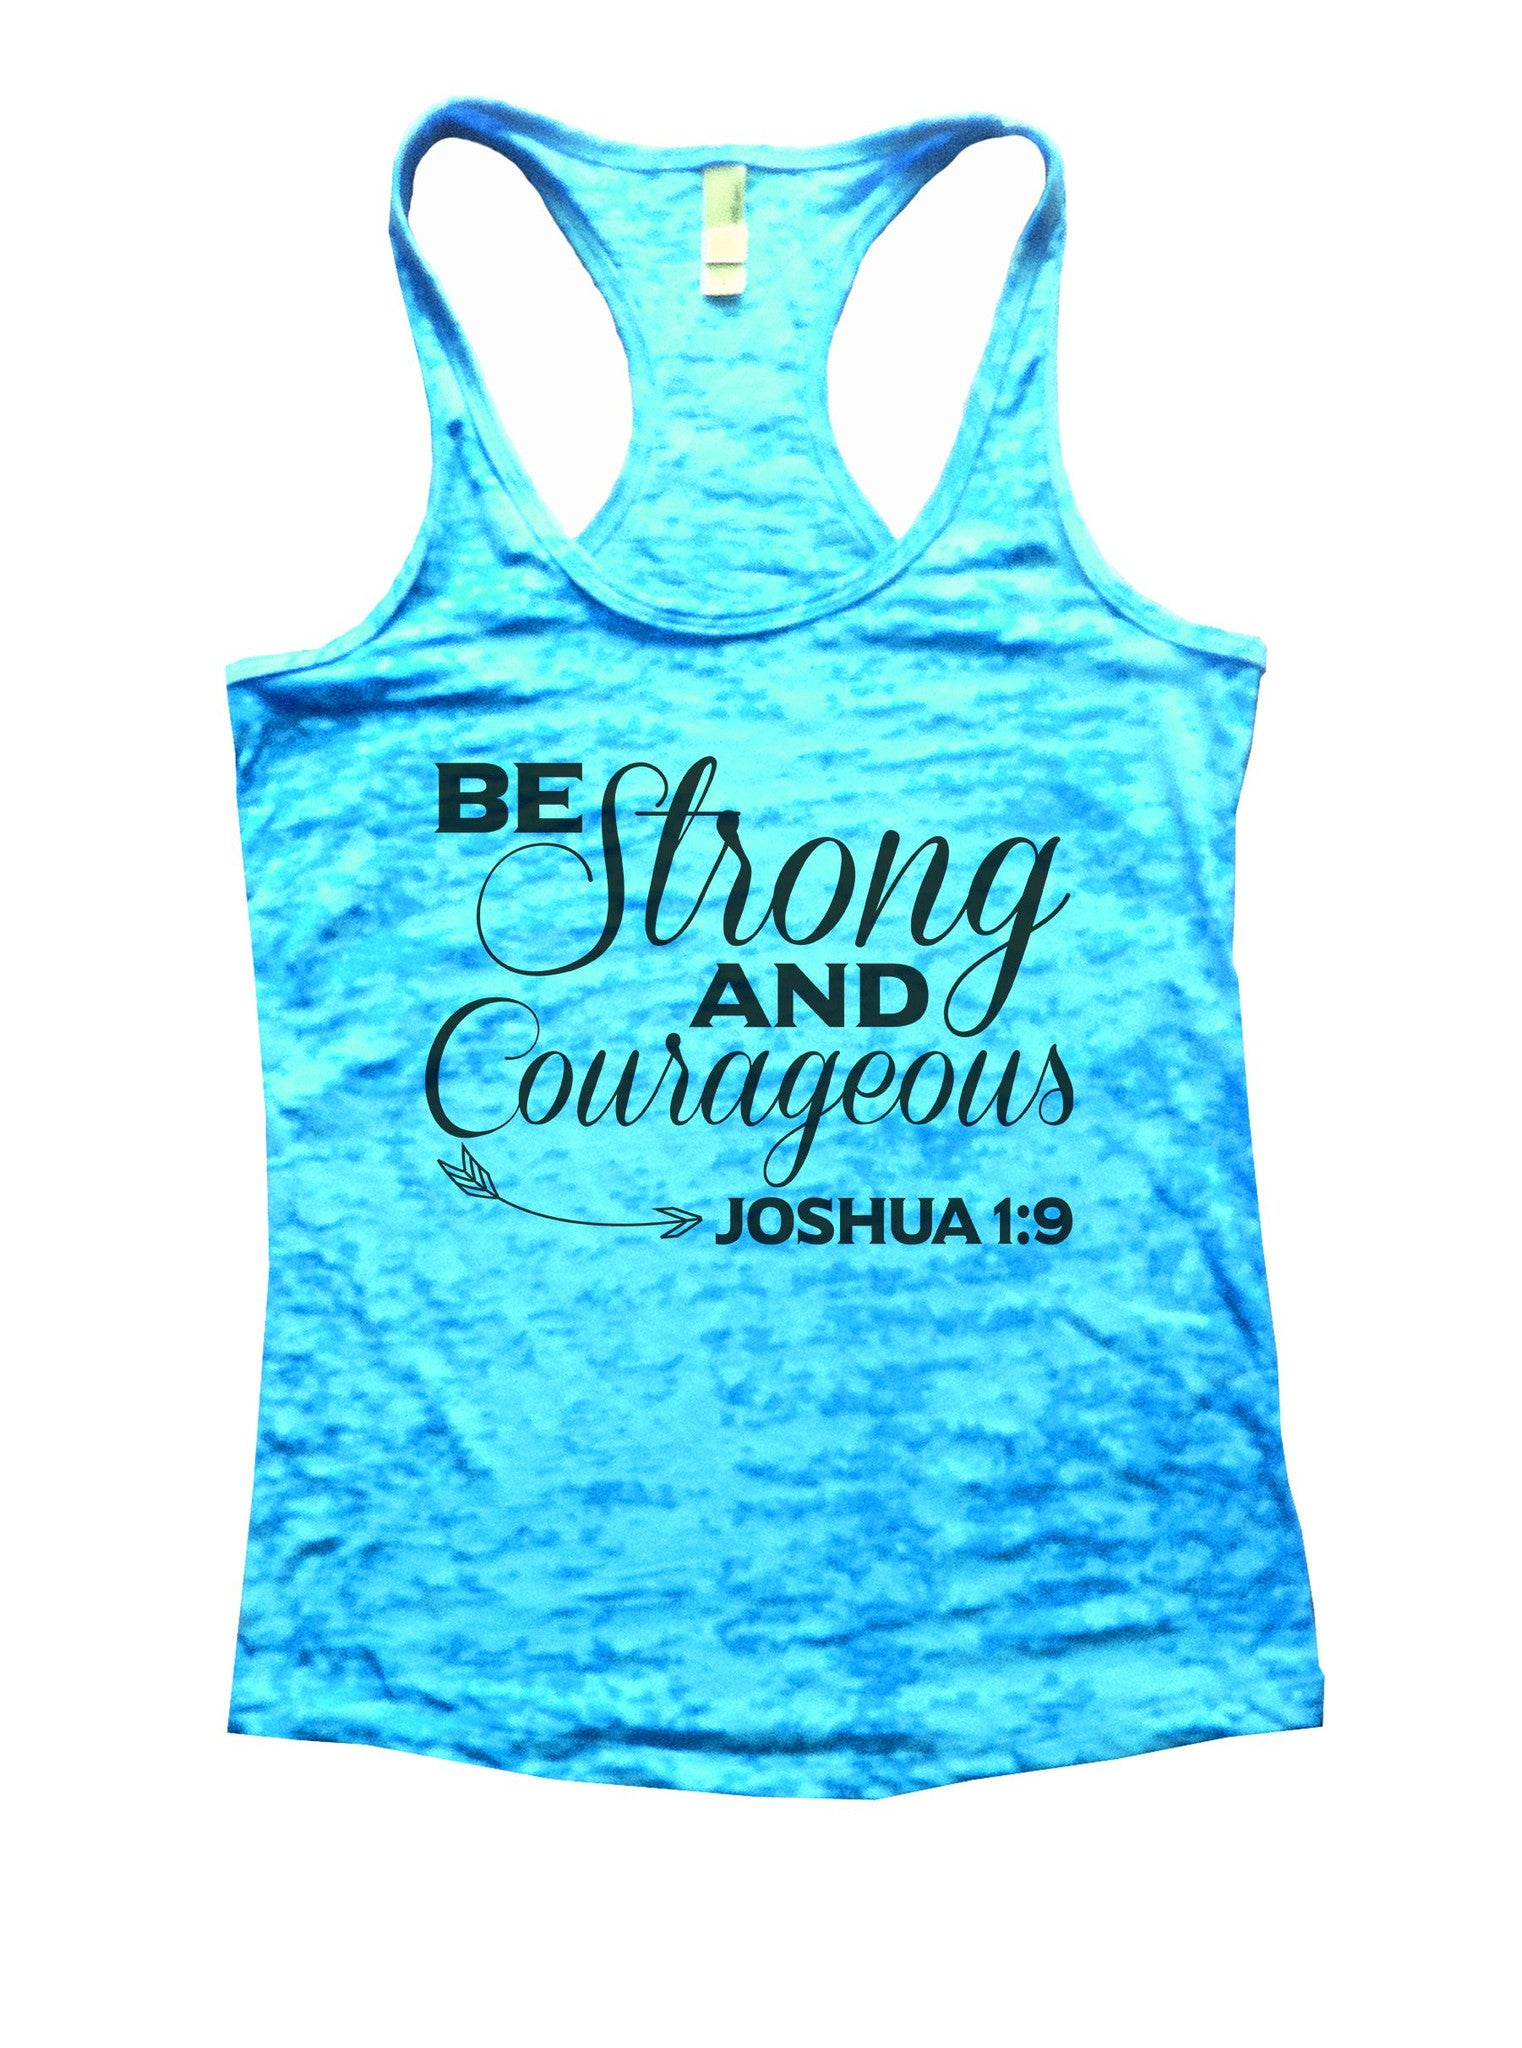 Be Strong And Courageous Joshua 1:9 Burnout Tank Top By BurnoutTankTops.com - 948 - Funny Shirts Tank Tops Burnouts and Triblends  - 4